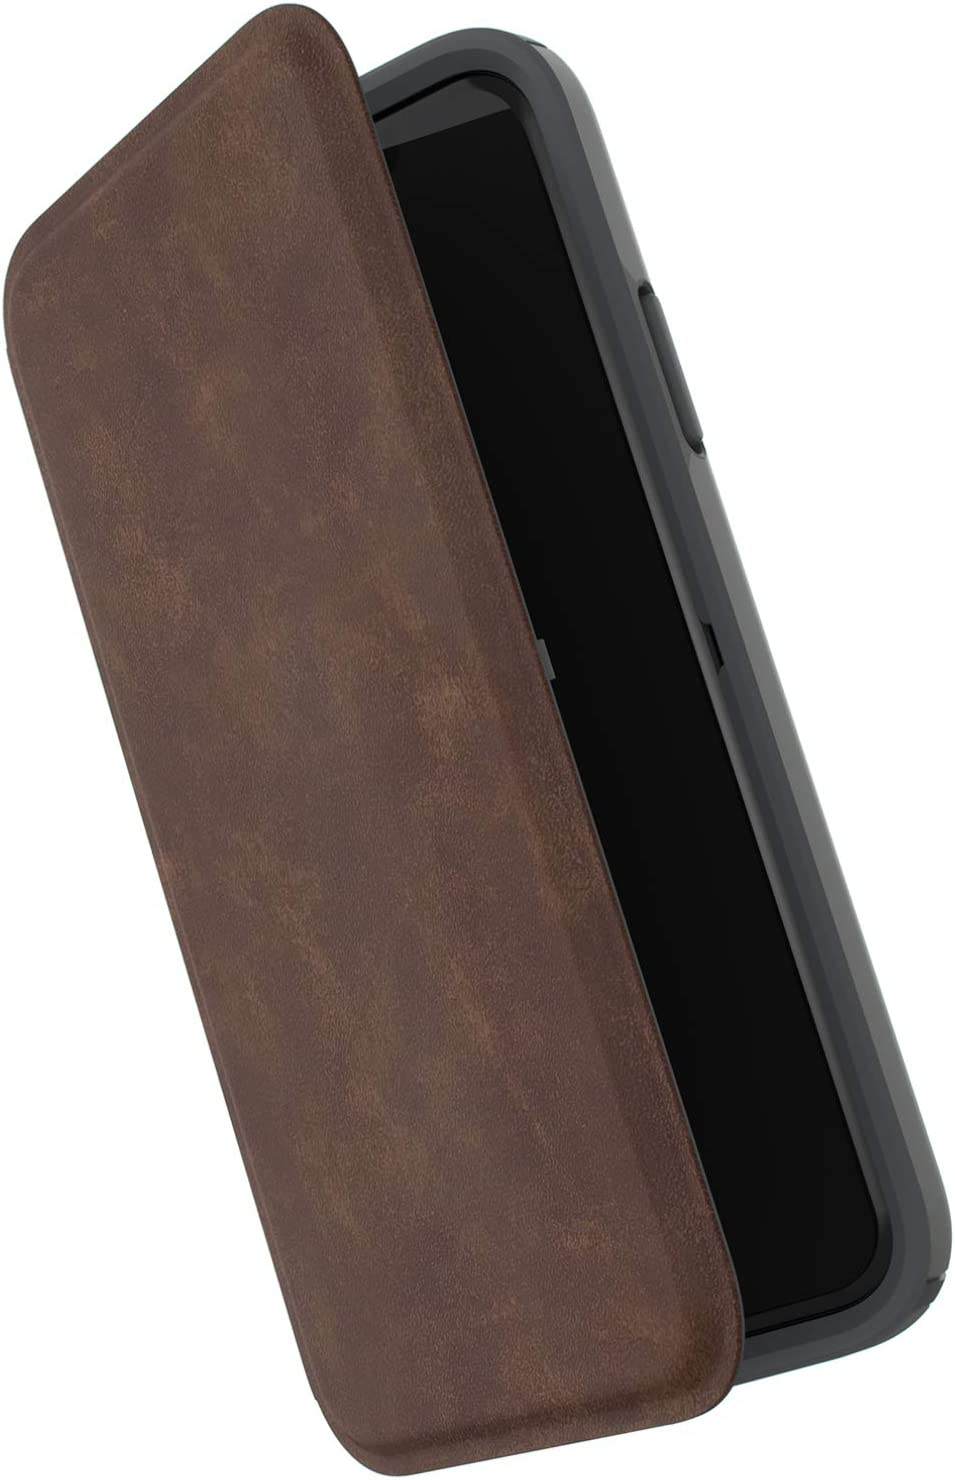 Speck Products Presidio Folio Leather iPhone Xs/iPhone X Case, Saddle Brown/Light Graphite Grey